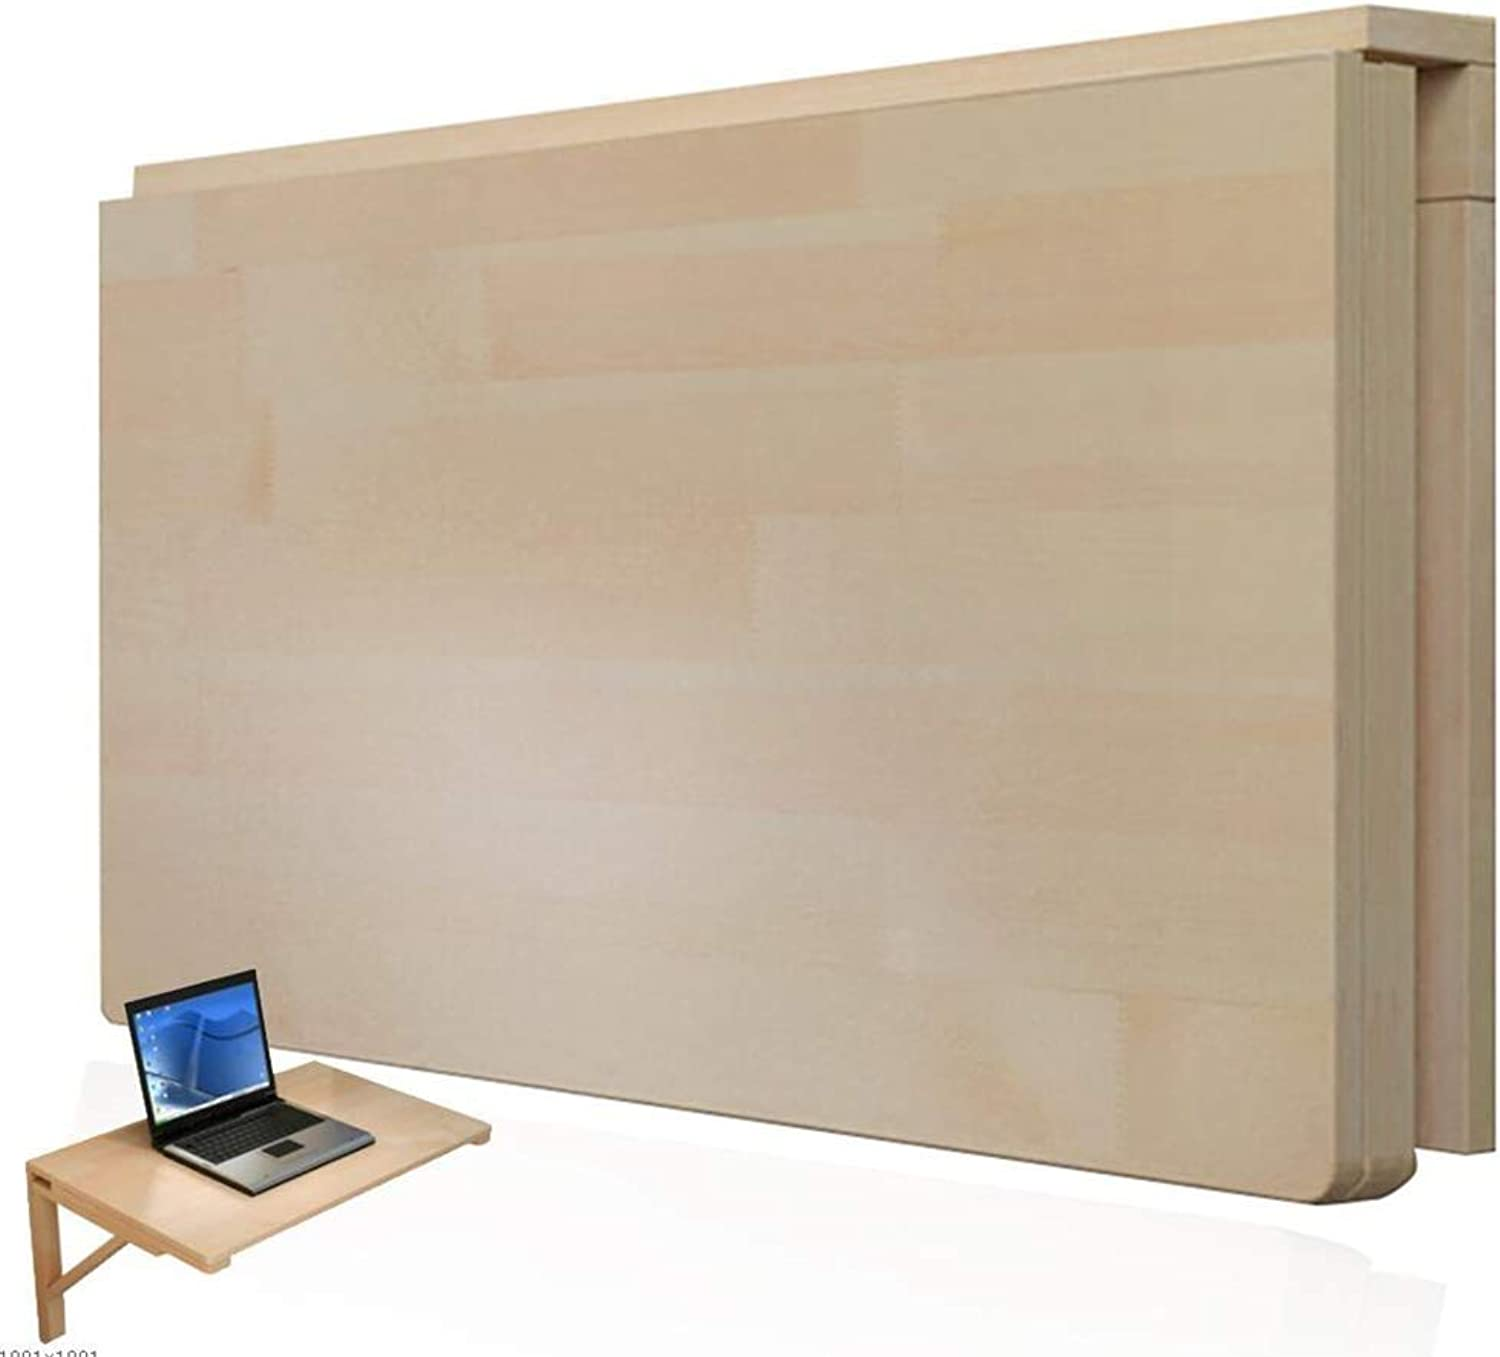 PENGFEI Wall-Mounted Table Laptop Stand Foldable Learning Desk Coffee Table, Small Space, 14 Sizes (color   Wood color, Size   50x30cm)